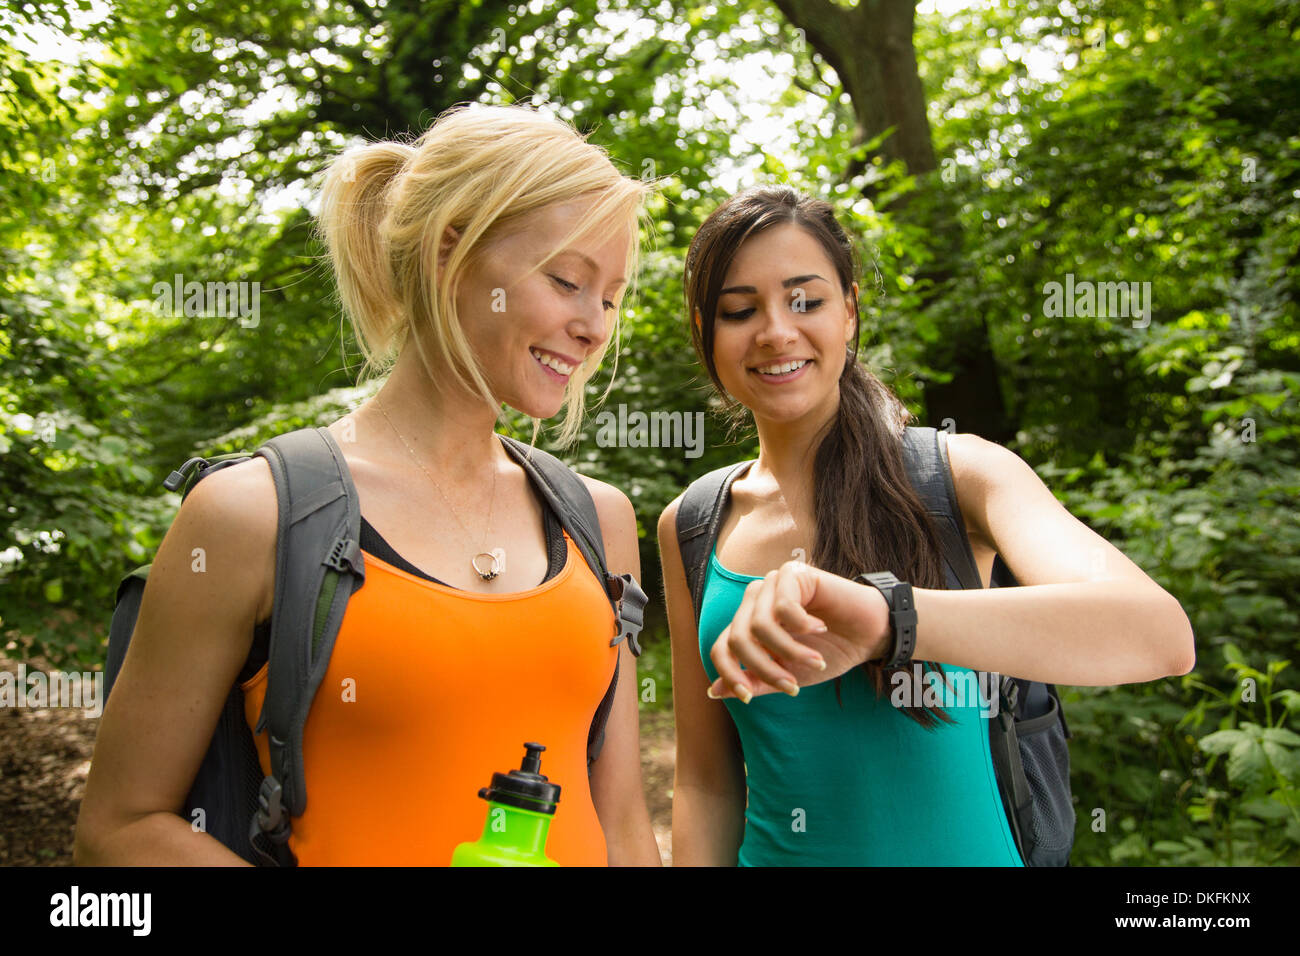 Women out walking in forest, checking the time - Stock Image